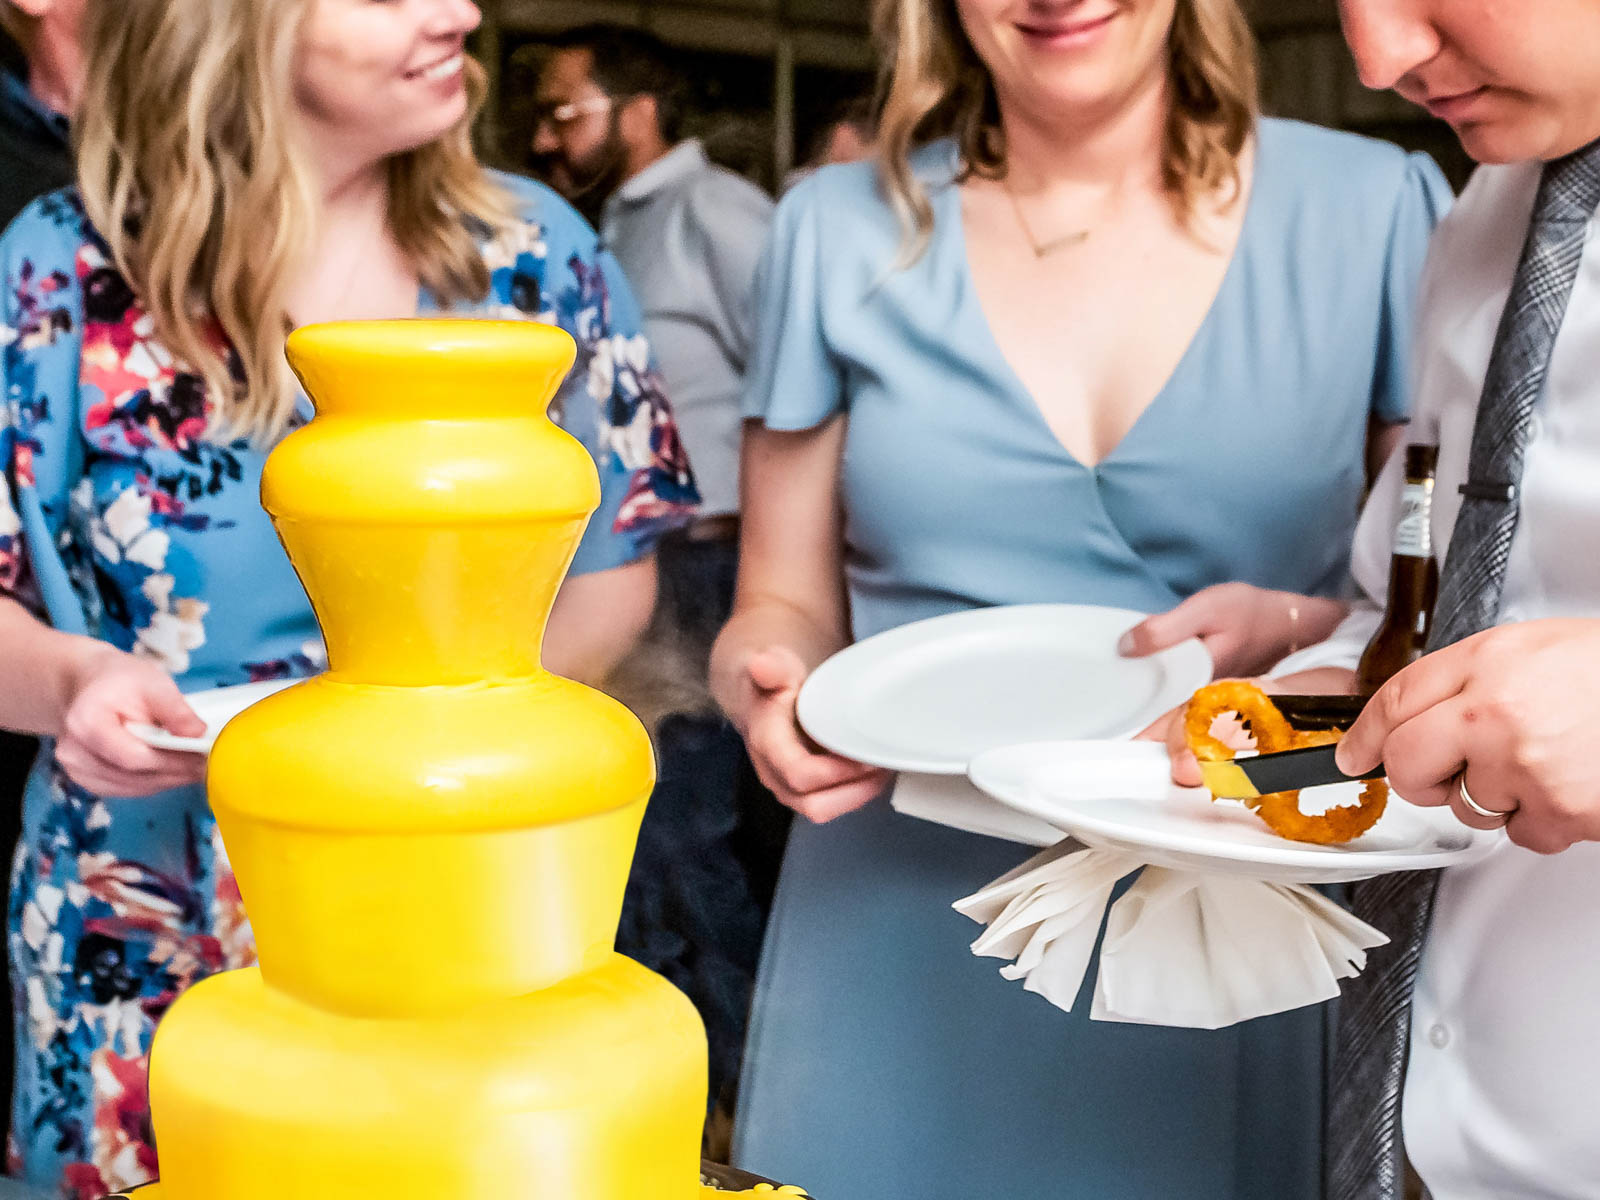 Portillo's Will Cater Your Wedding with a Cheese Sauce Fountain and Plenty of Hot Dogs